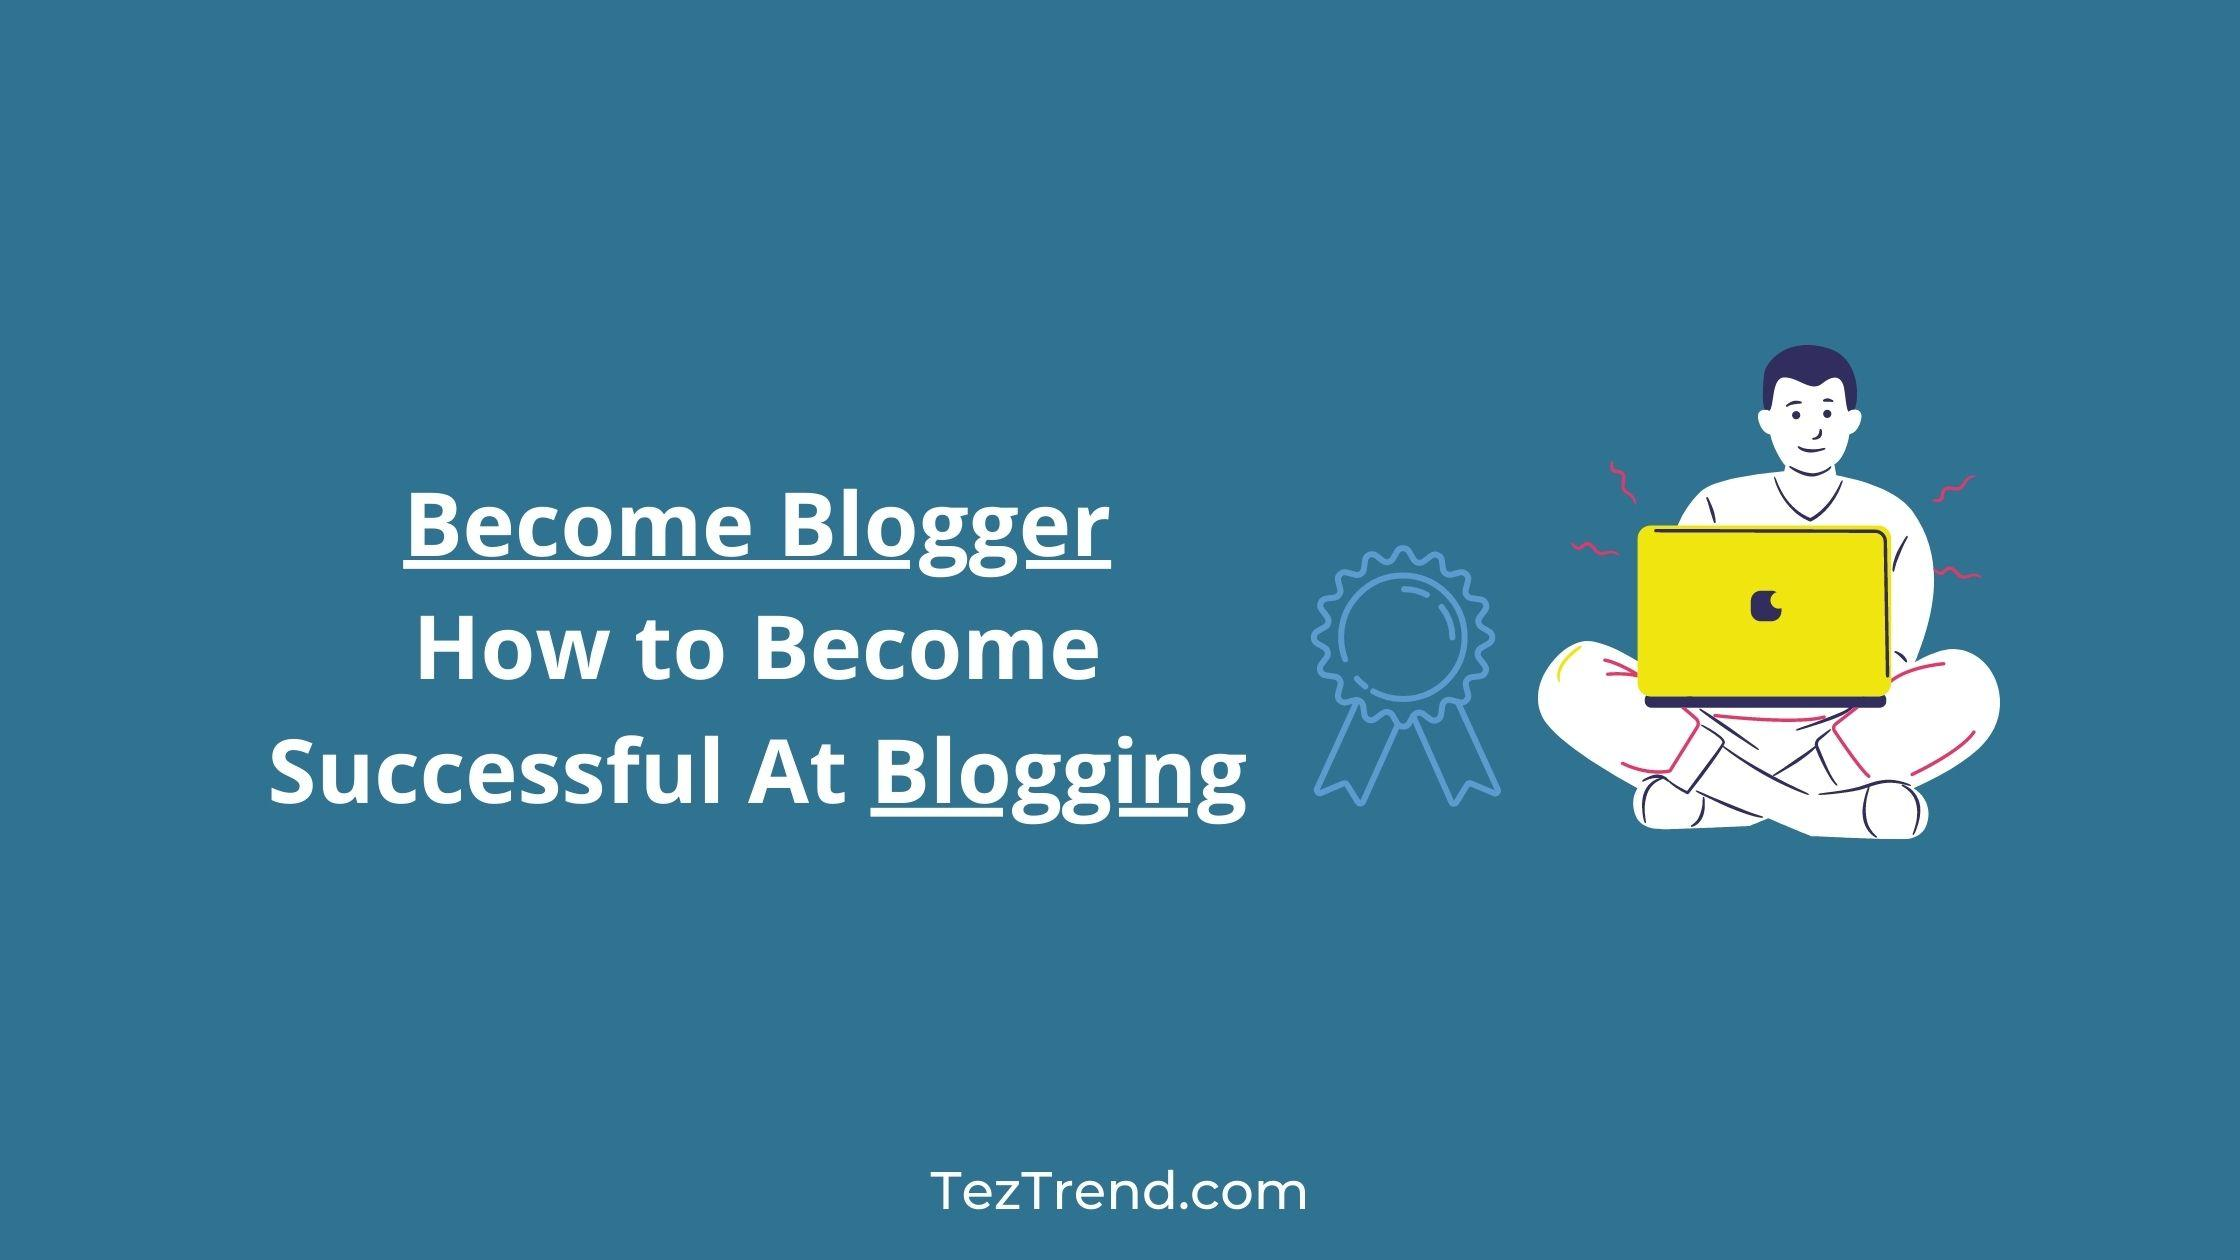 Become Blogger in 2020